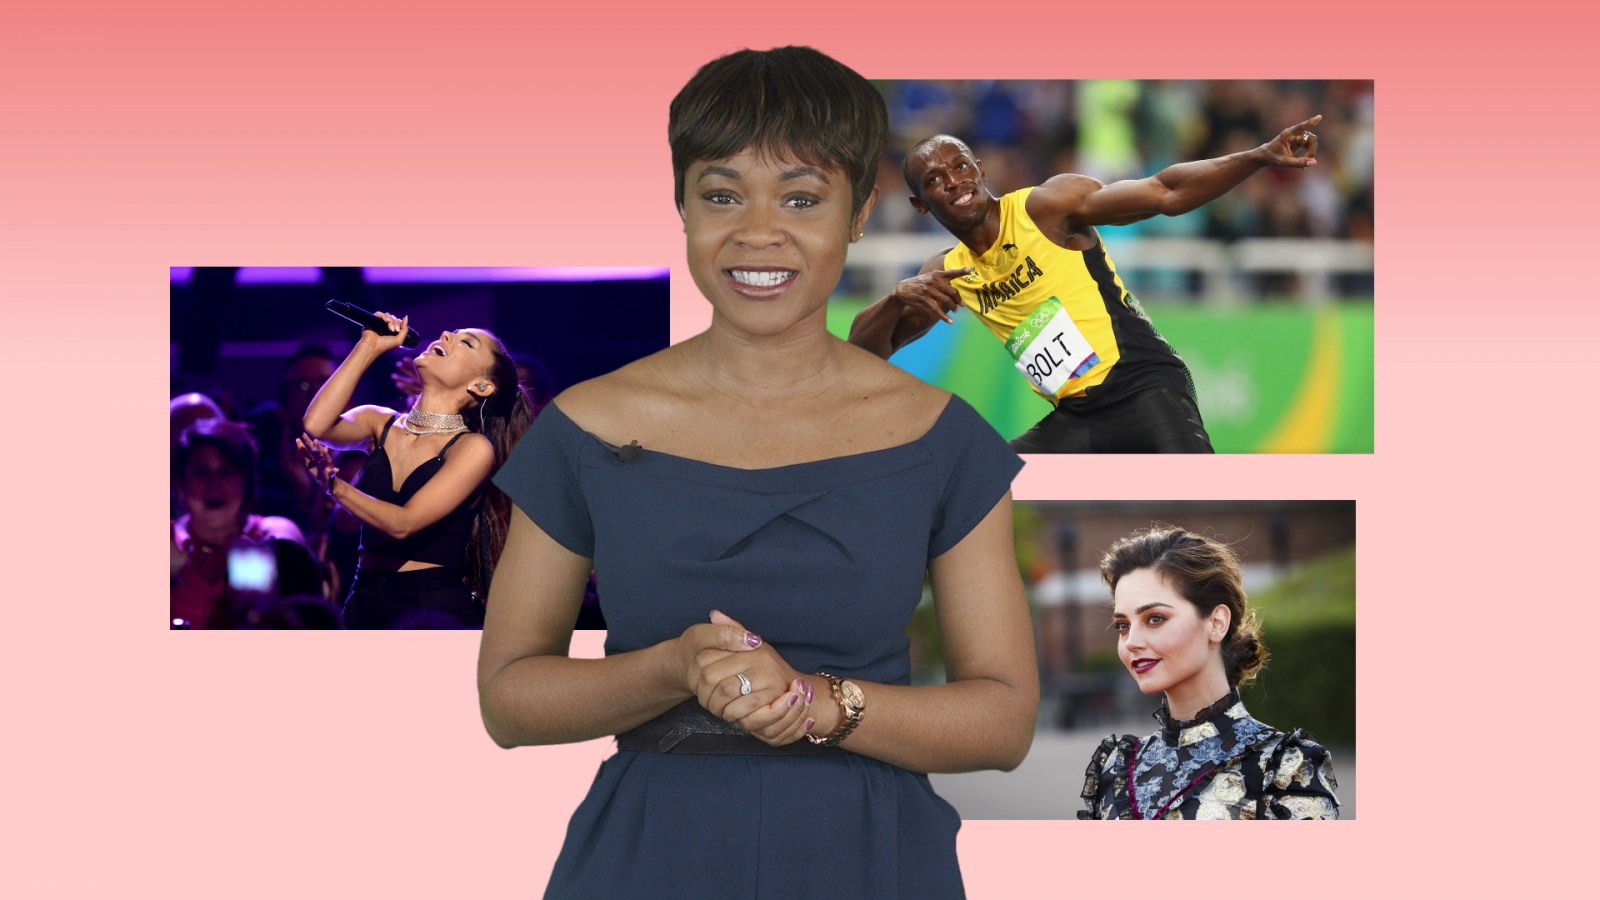 A-list Insider: Usain Bolt cheating scandal, Jenna Coleman shuts down Prince Harry romance rumours